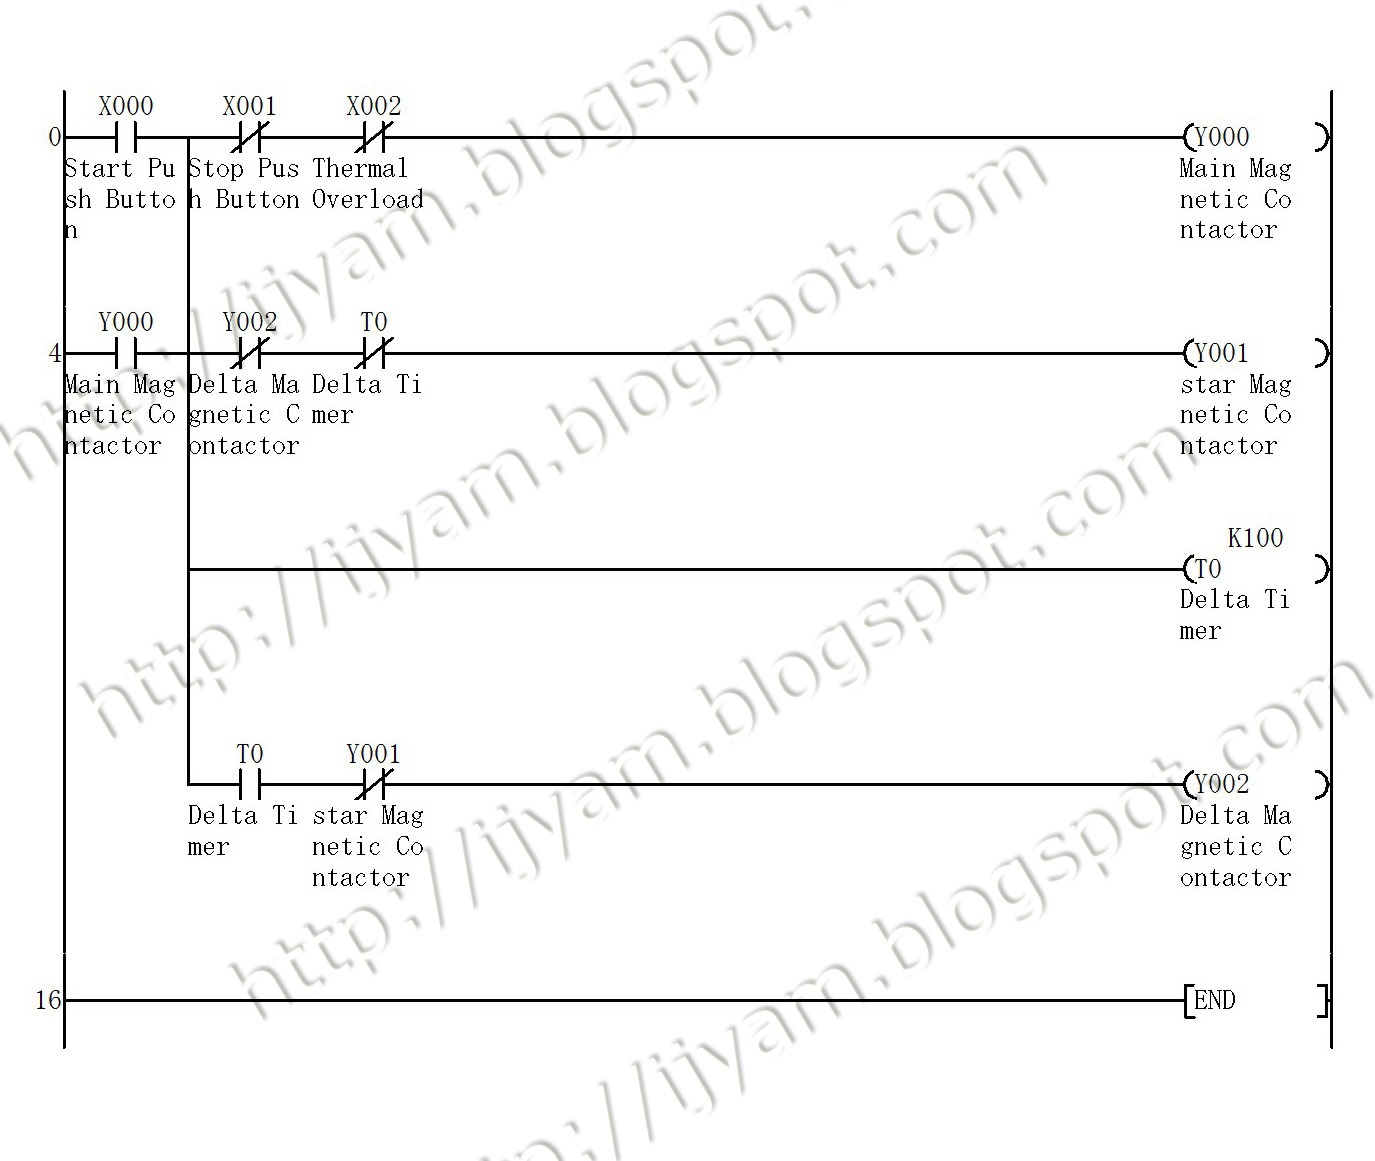 Electrical wiring diagram star delta control and power circuit using mitsubishi plc ladder logic program for the star delta motor control circuit ccuart